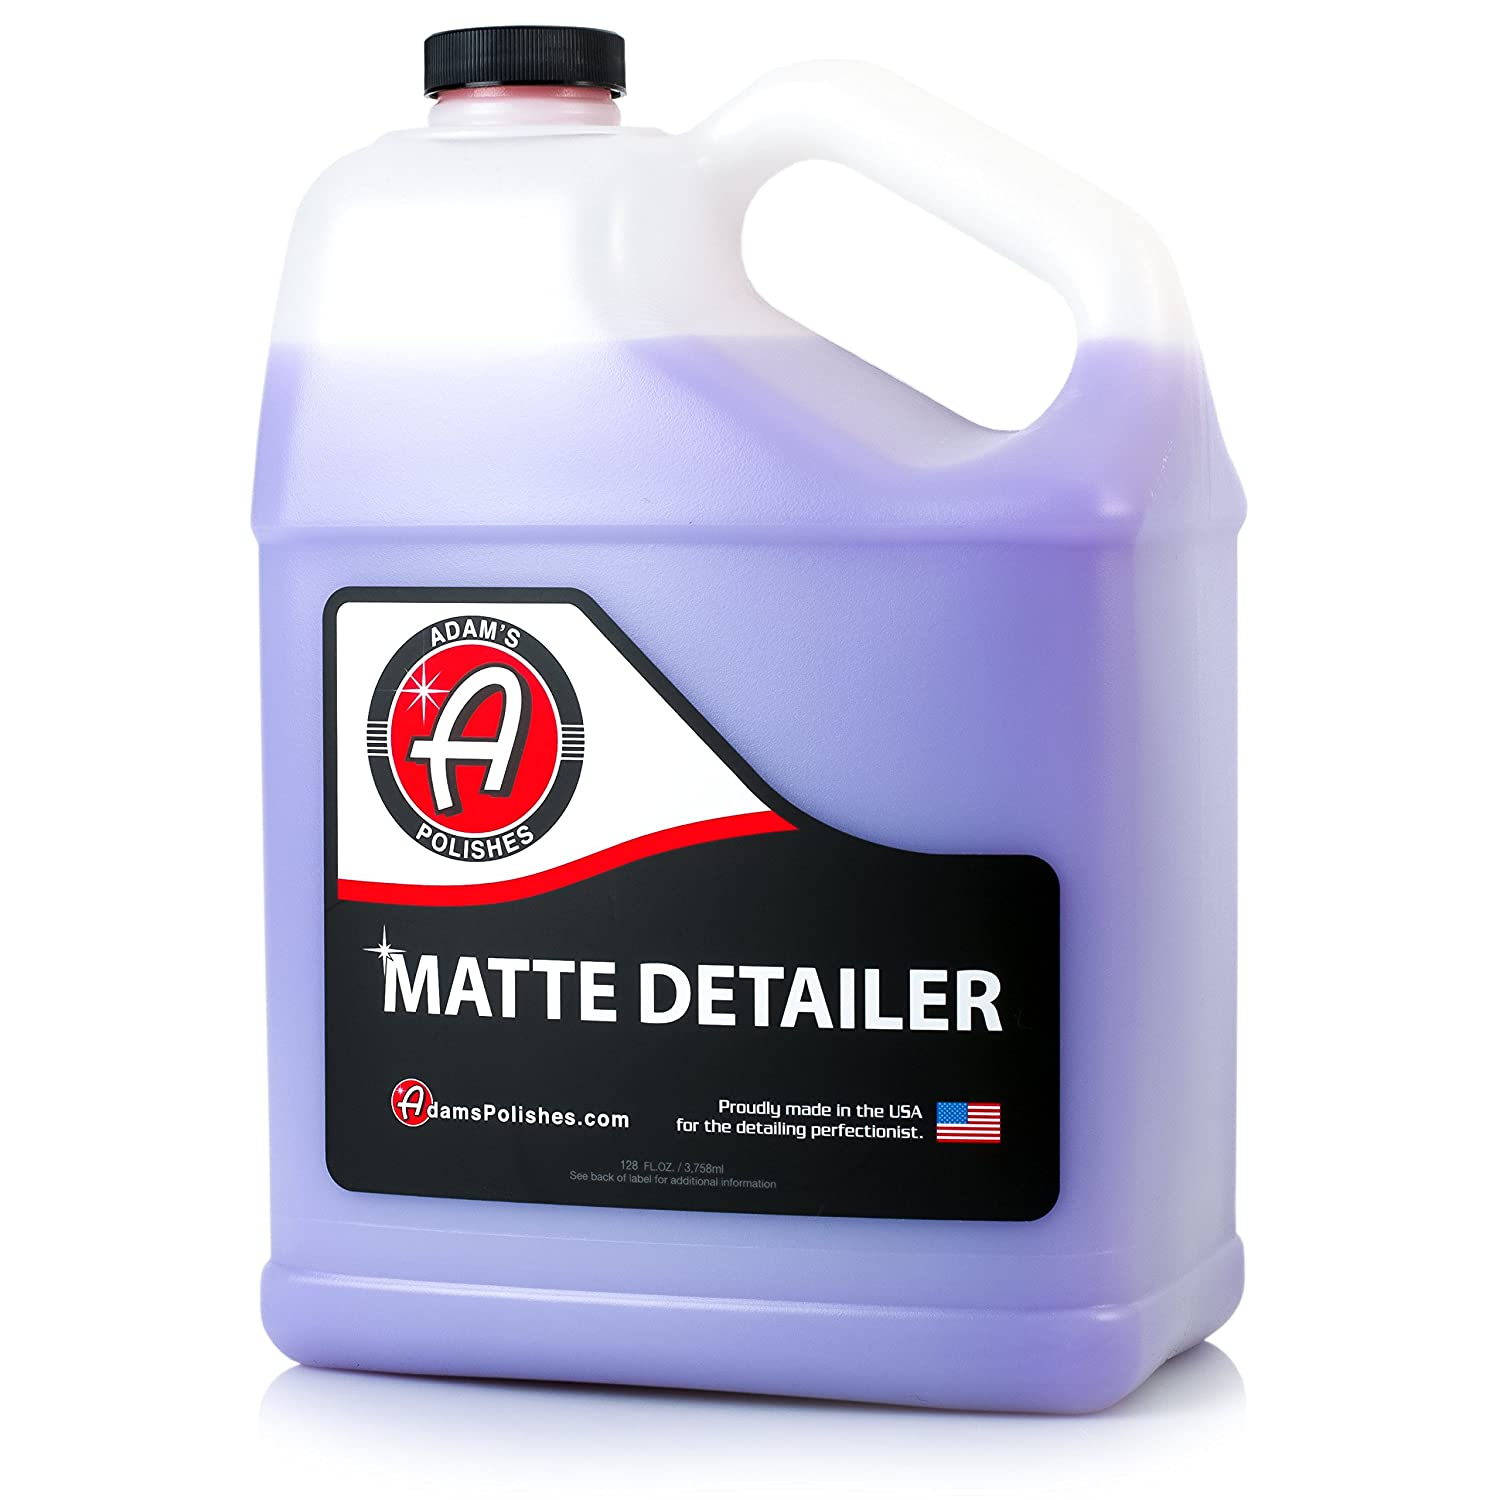 Adam's Matte Detailer - Specialized Formulation Perfect for any Matte, Satin, and Gloss Finishes - Does Not Add Any Level of Shine - Easy to Use, With No Streaking or Residues (Combo) Adam' s Polishes